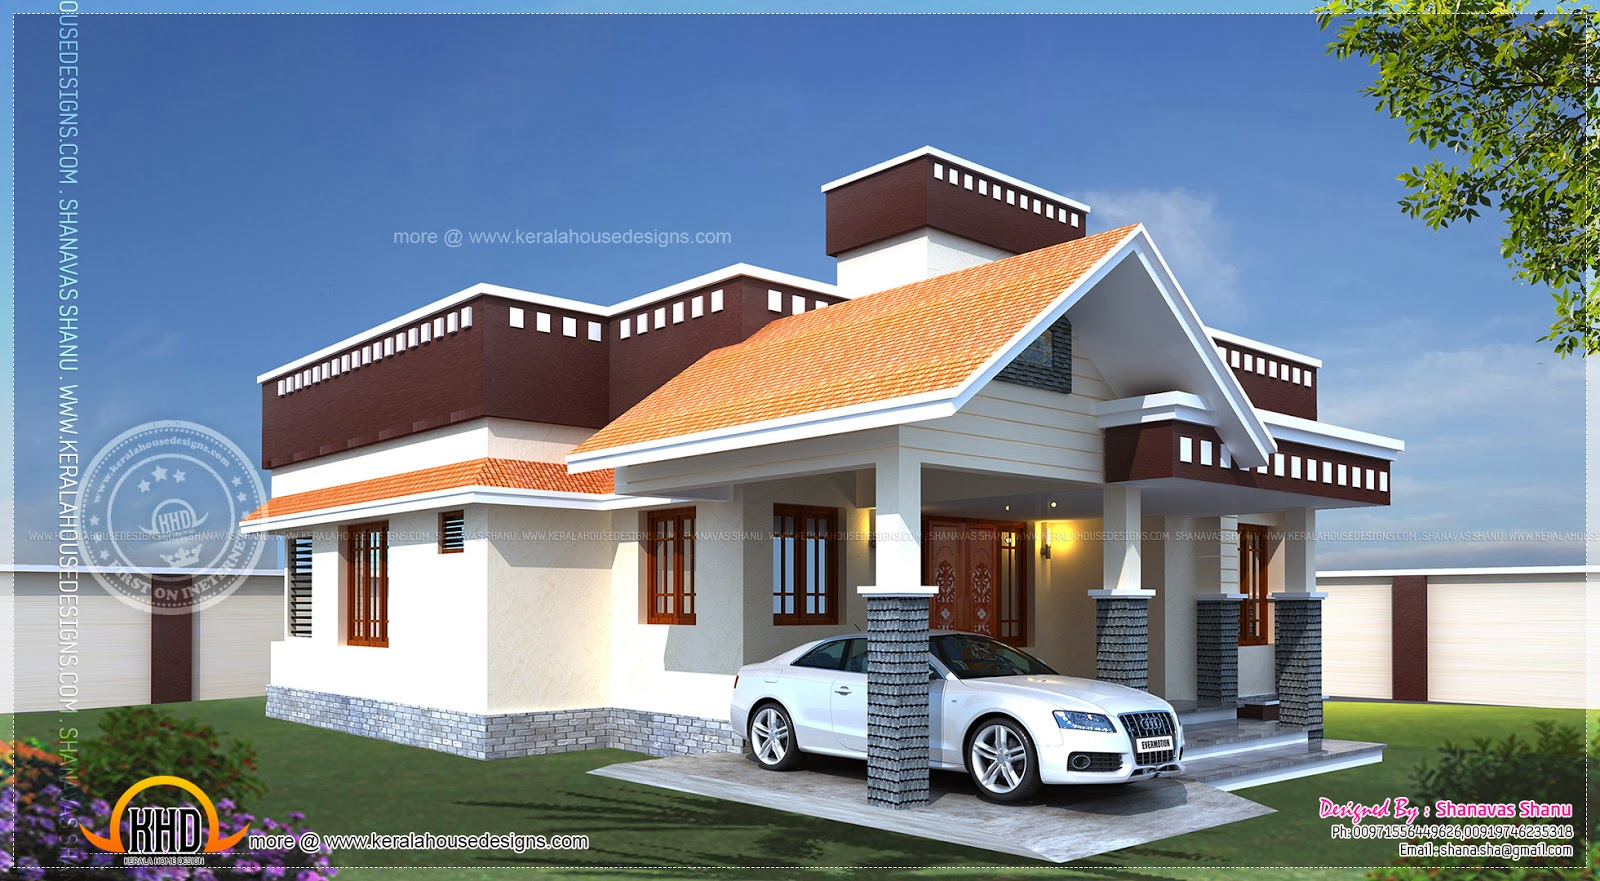 Home plan of small house kerala home design and floor plans Home design and estimate